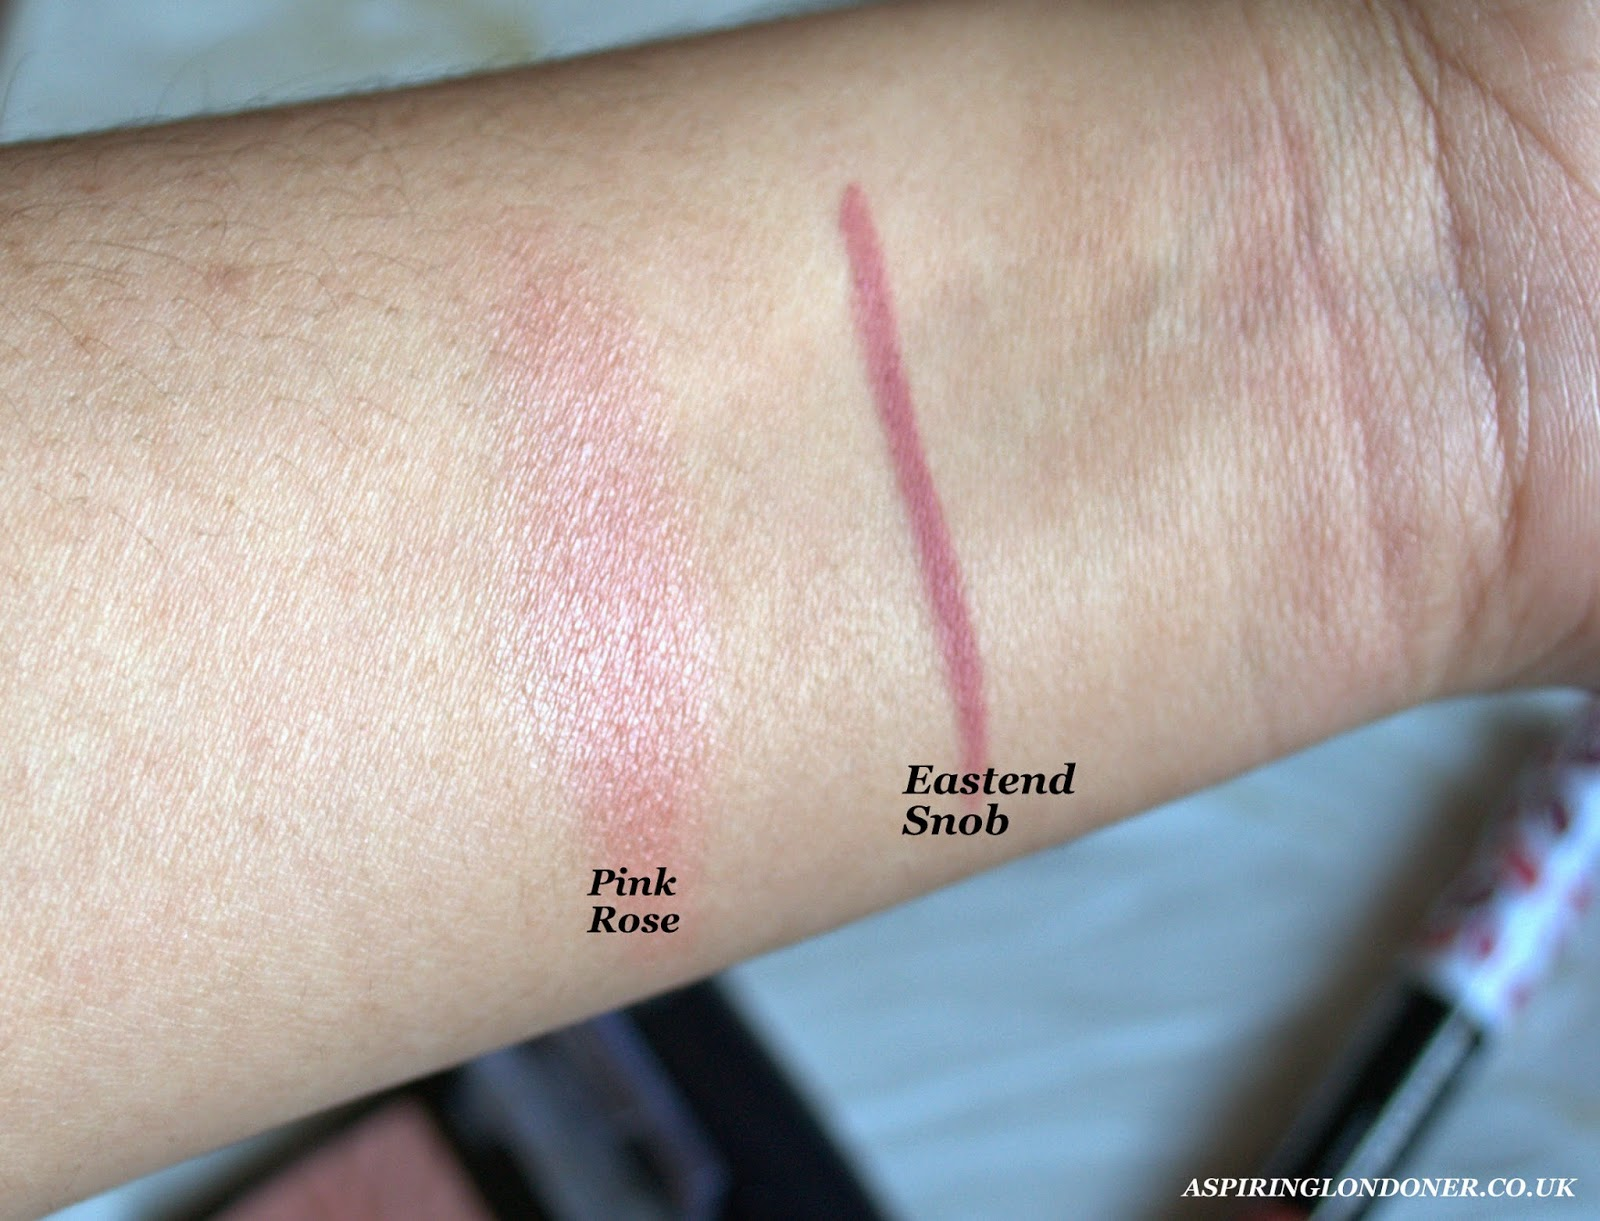 Rimmel Blush Pink Rose Swatch and Rimmel Lipliner Eastend Snob Swatch - Aspiring Londoner